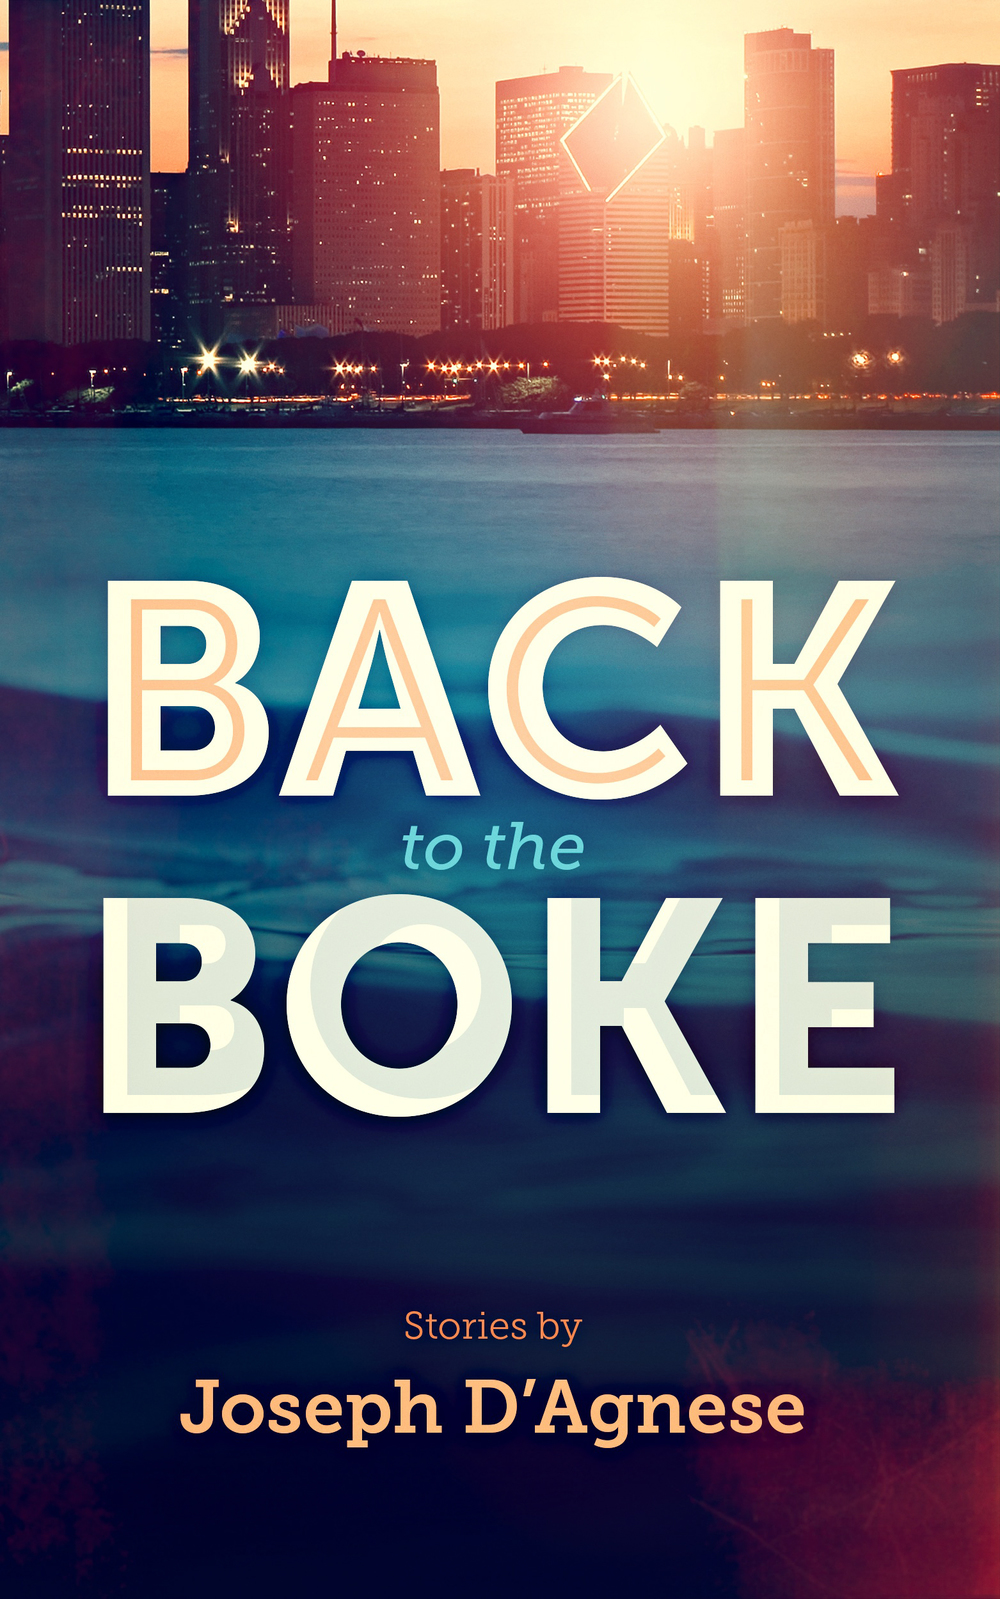 Back to the Boke, two short stories set in Hoboken, New Jersey, by Joseph D'Agnese